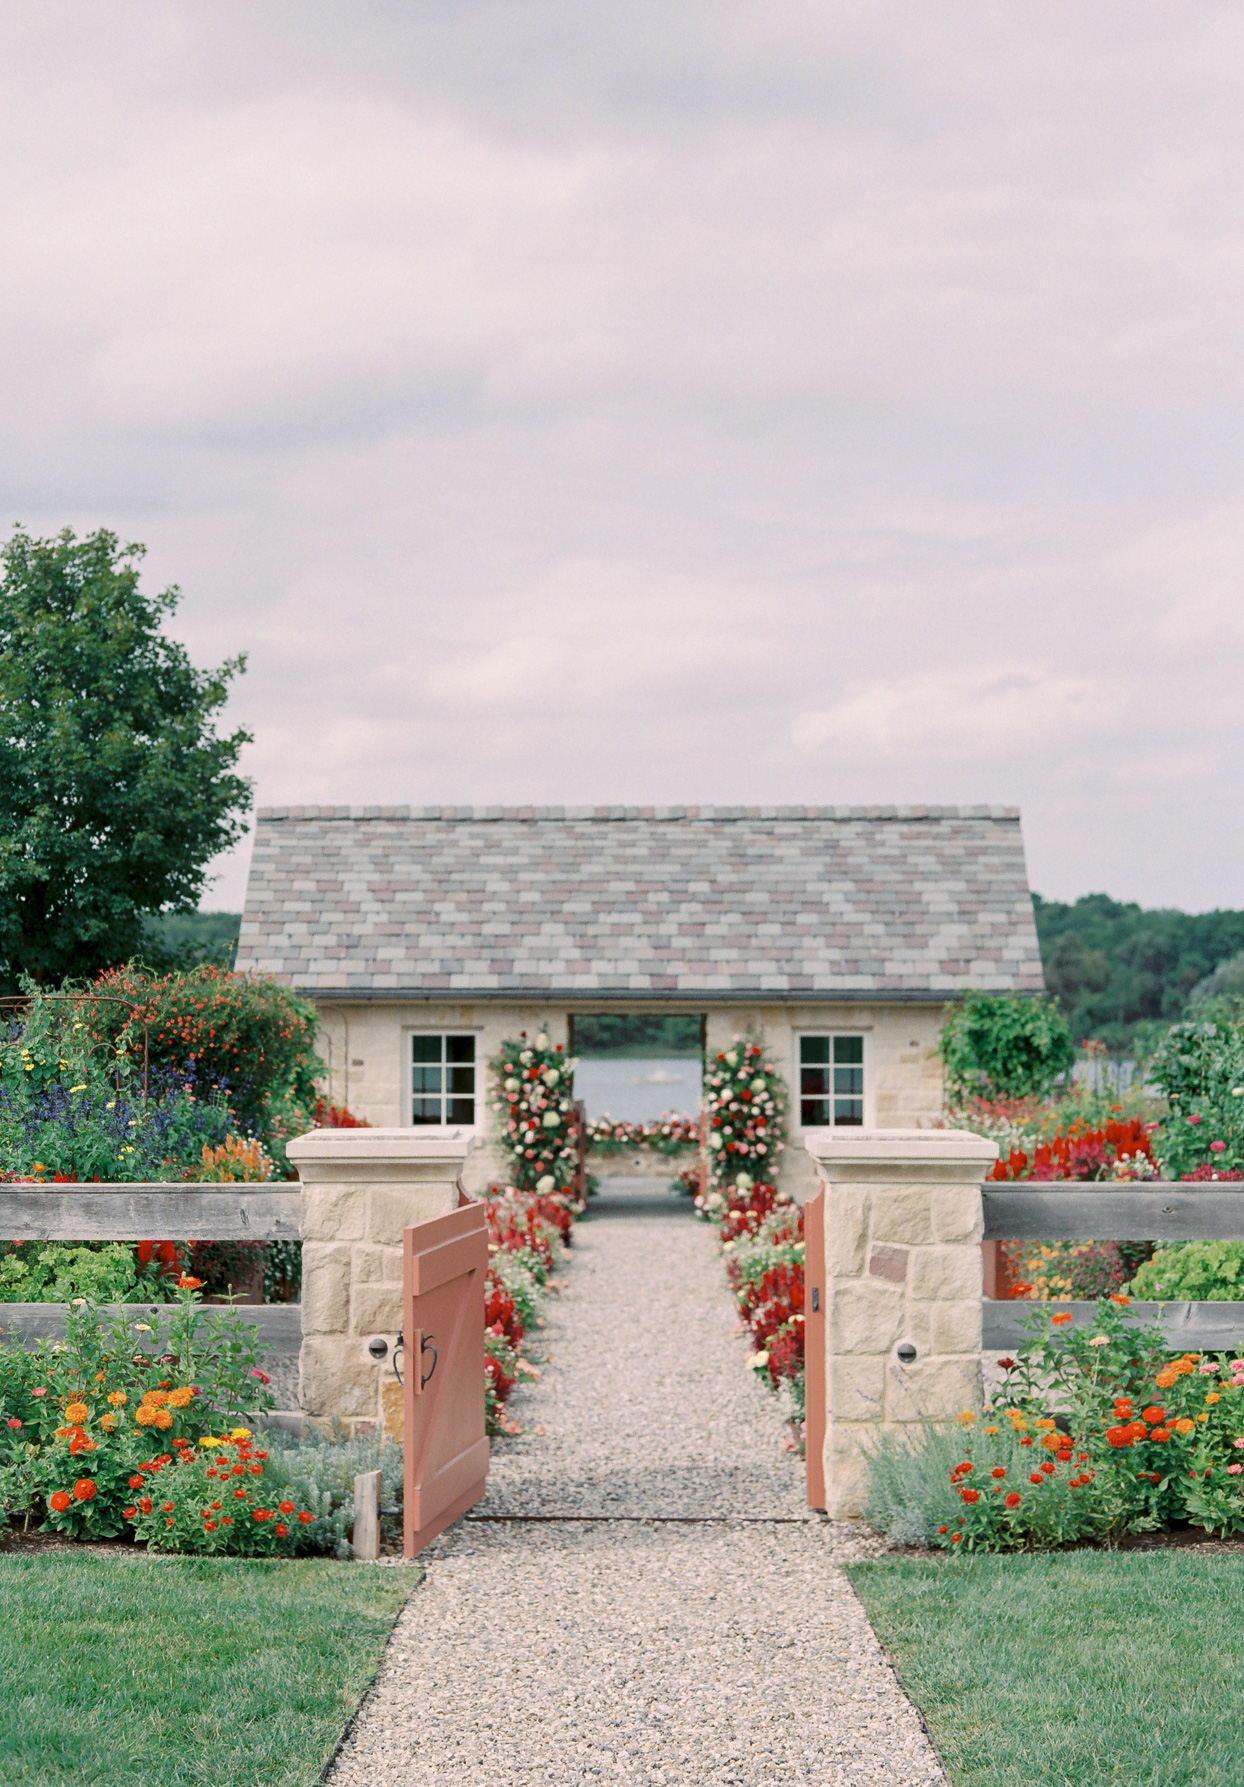 stone building and fence with red and white flowers for wedding